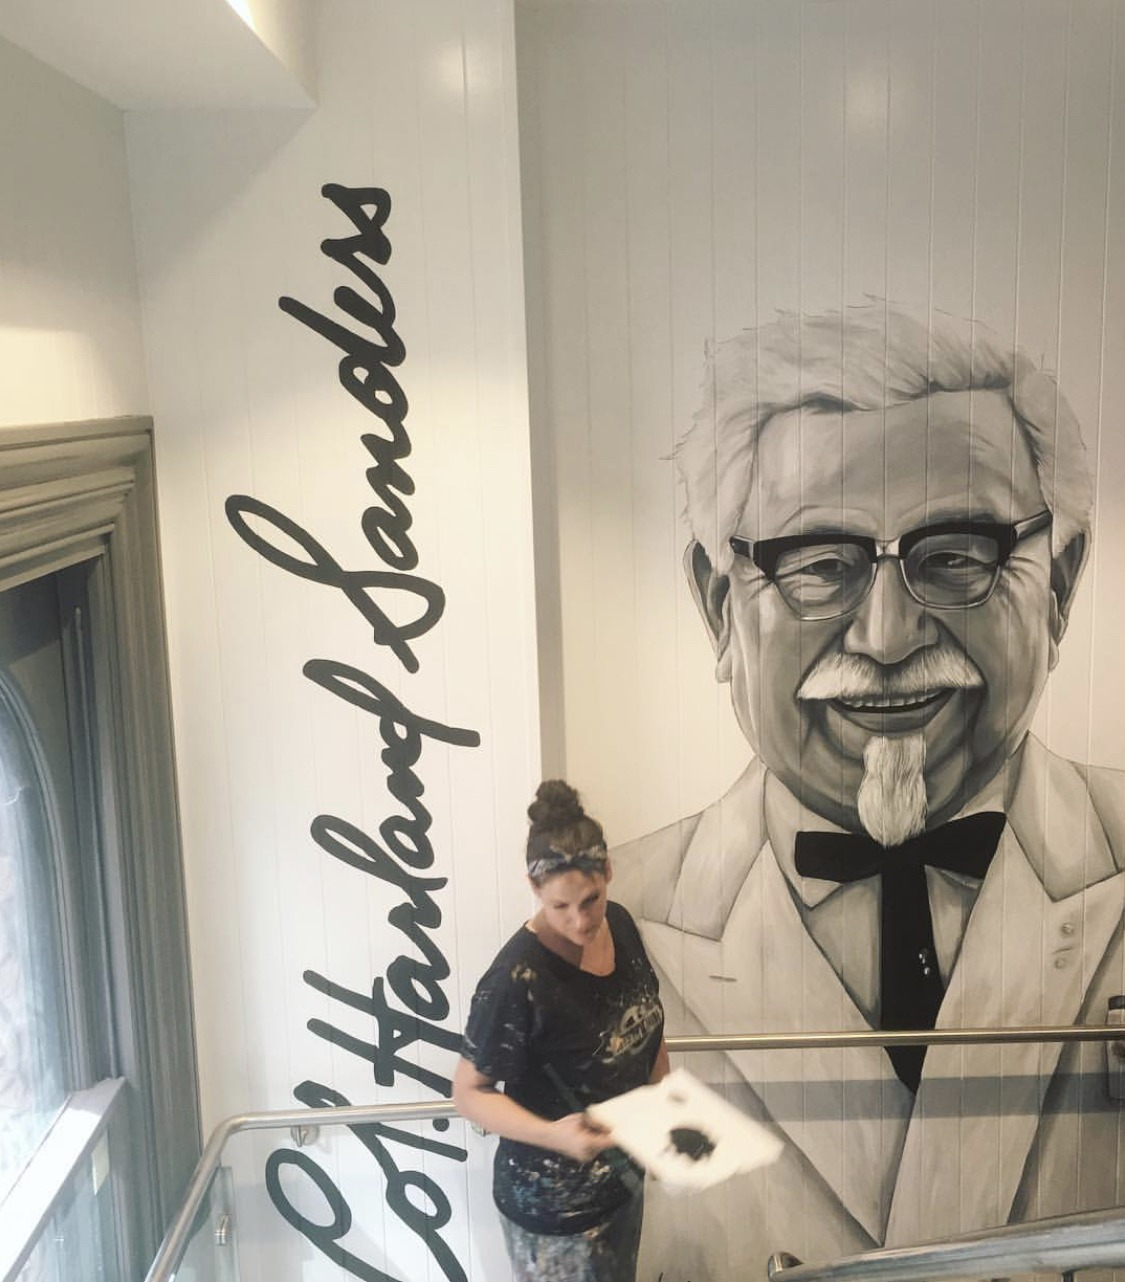 the-art-of-wall-KFC-sydney-colonel-sanders-portrait-mural-painted-by-artist-Stacey-Keating2